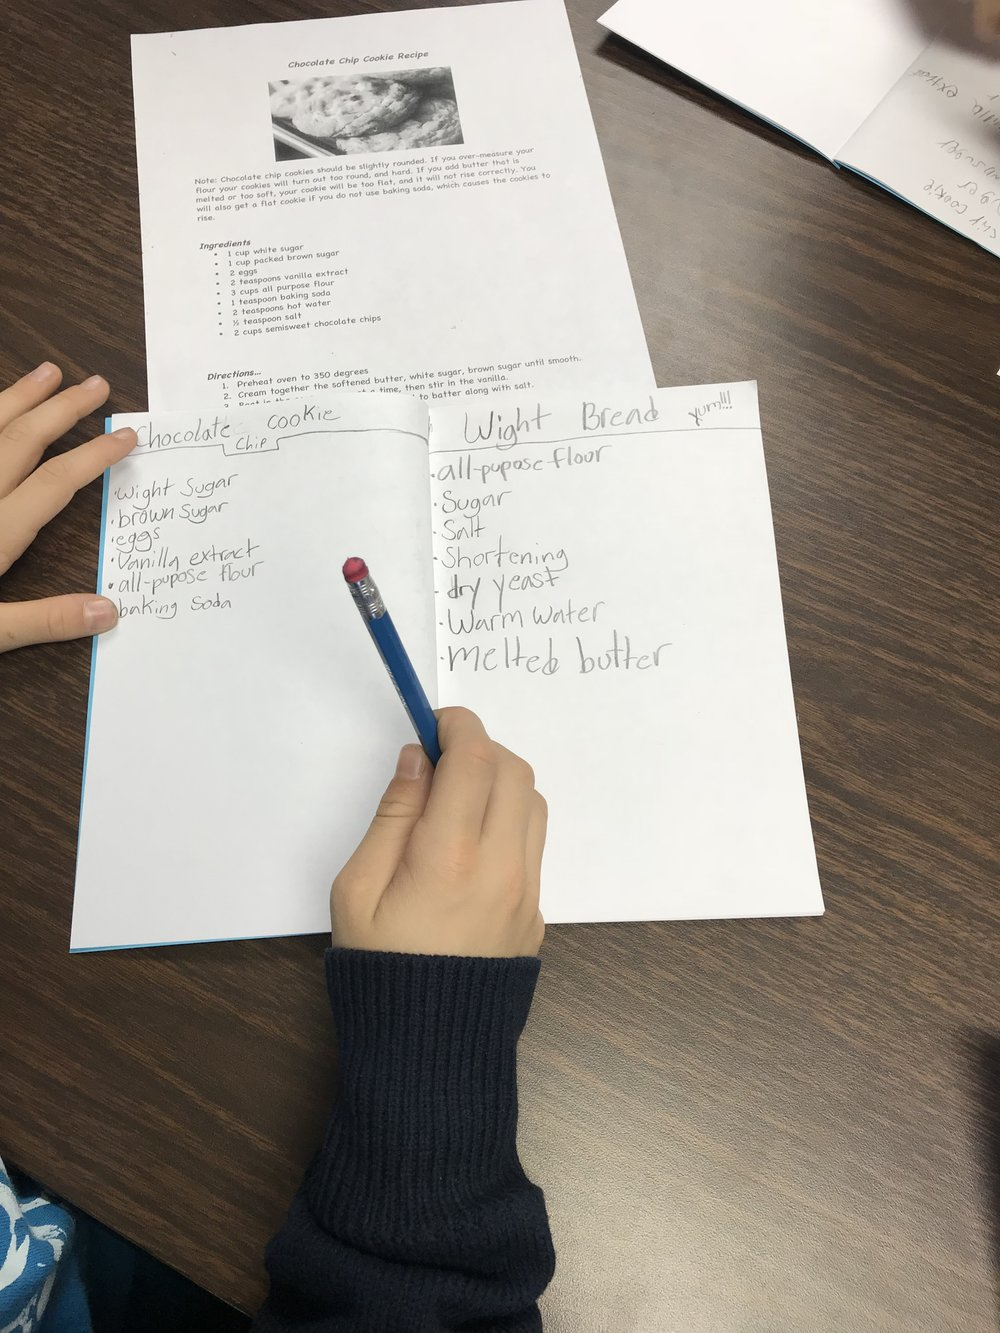 Students practiced copy work to identify spelling mistakes they make as they create their recipe books.